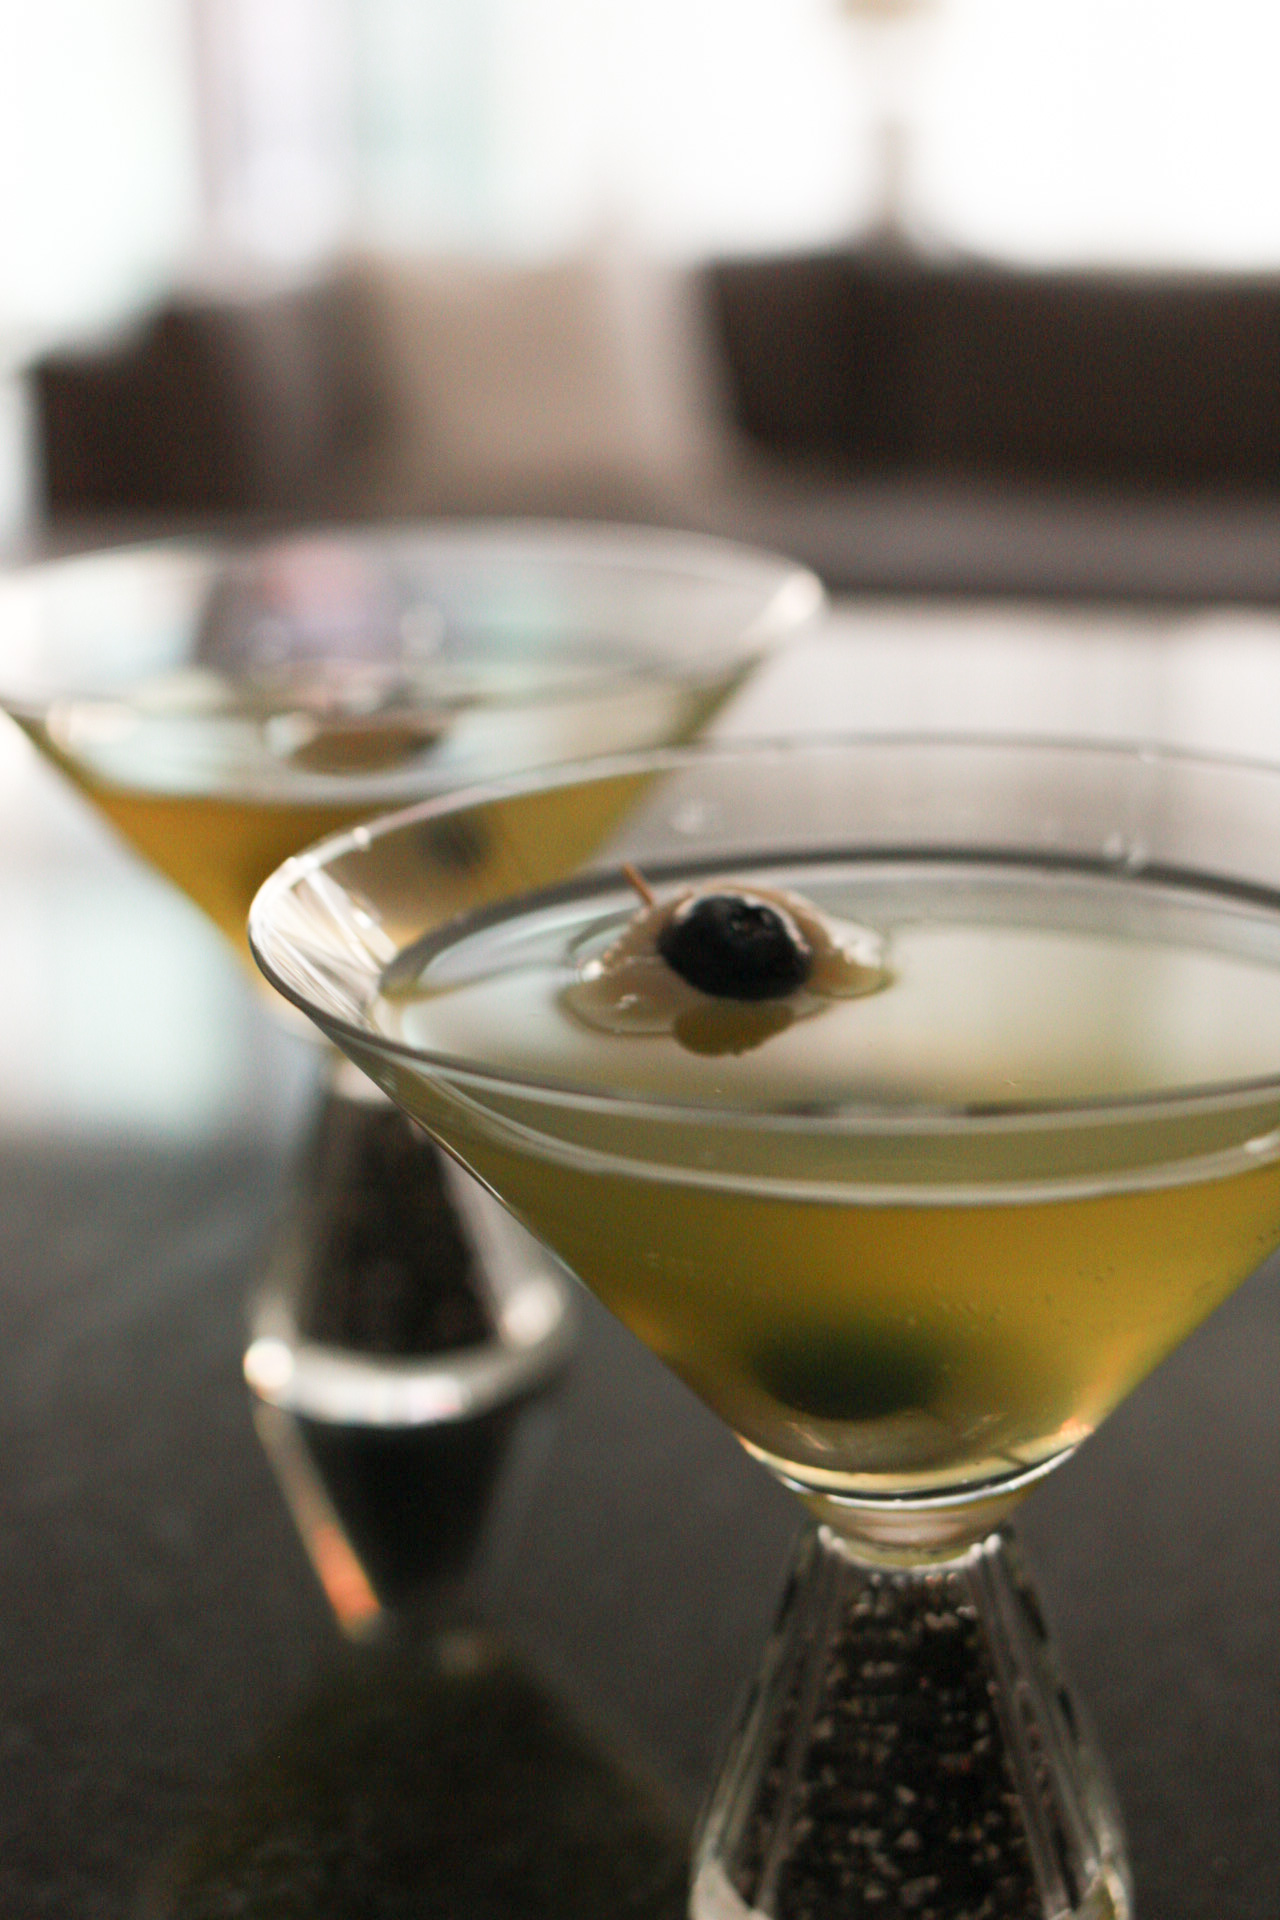 sour apple martini with lychee garnish